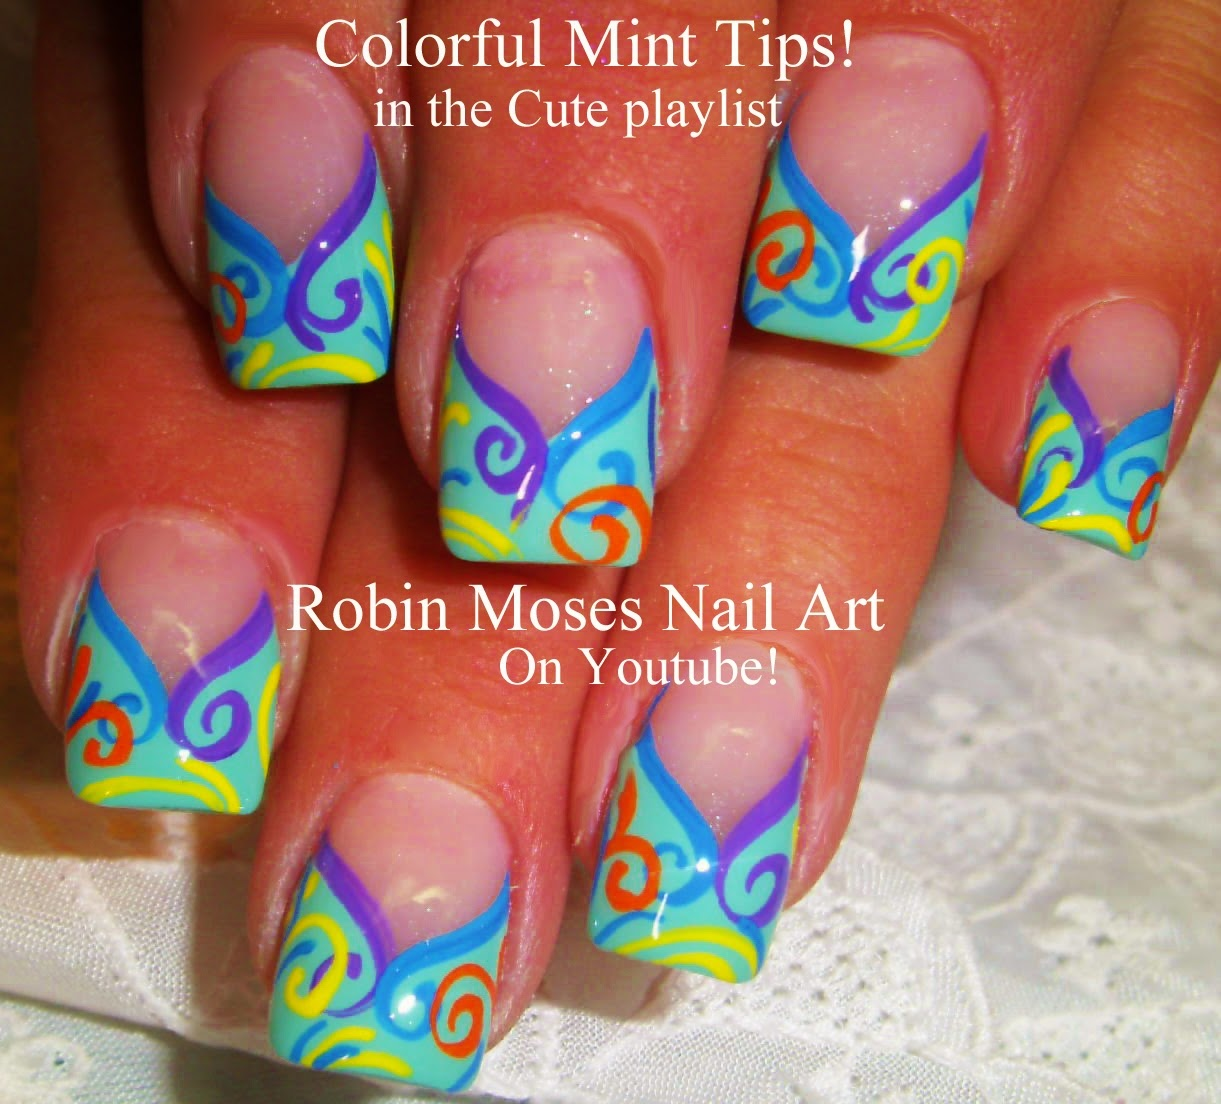 Kbshimmer Spring 2014 Chevron Dot Nail Art Easter Design: Mint Tip Nails Designs With A Twist